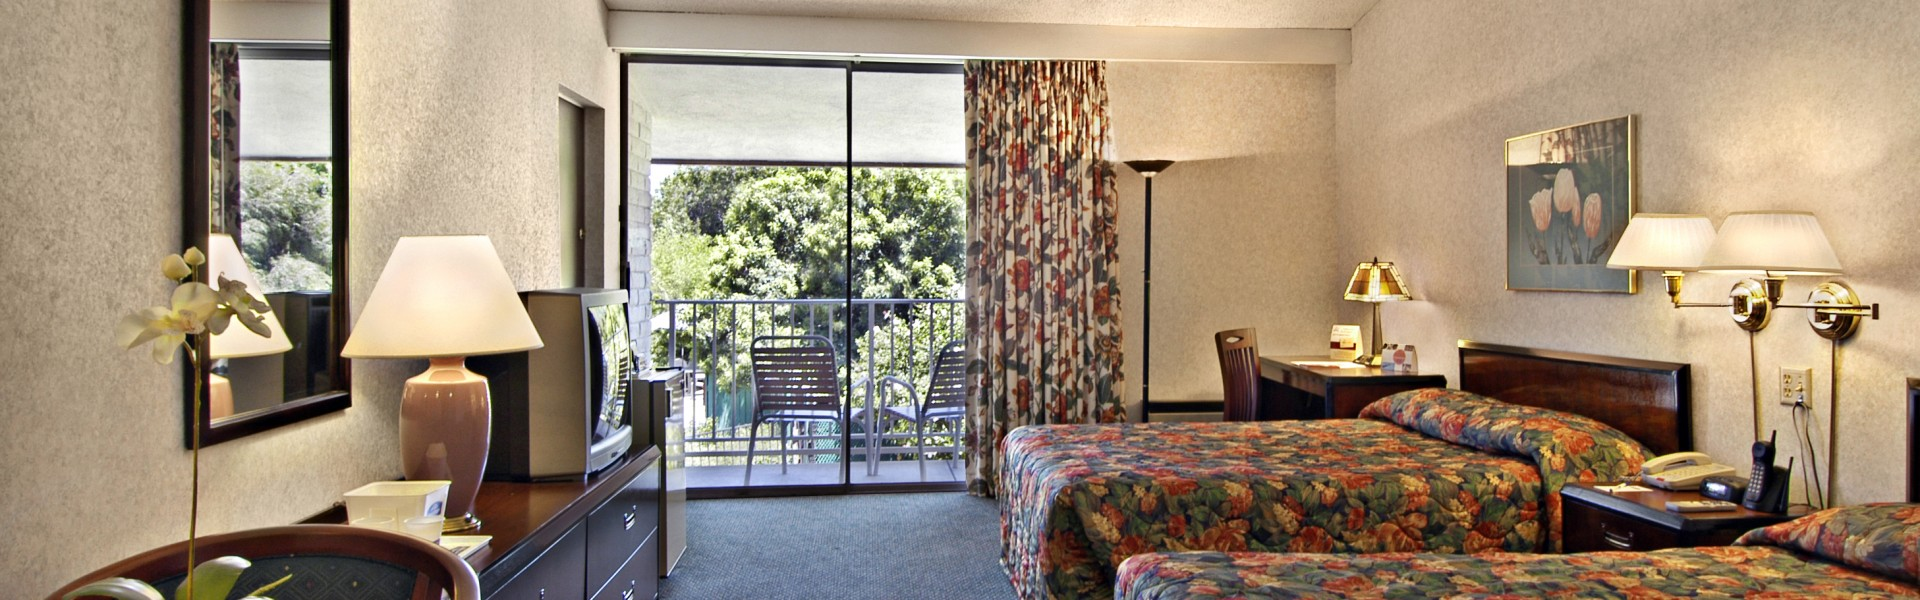 Knights Inn room in Claremont CA